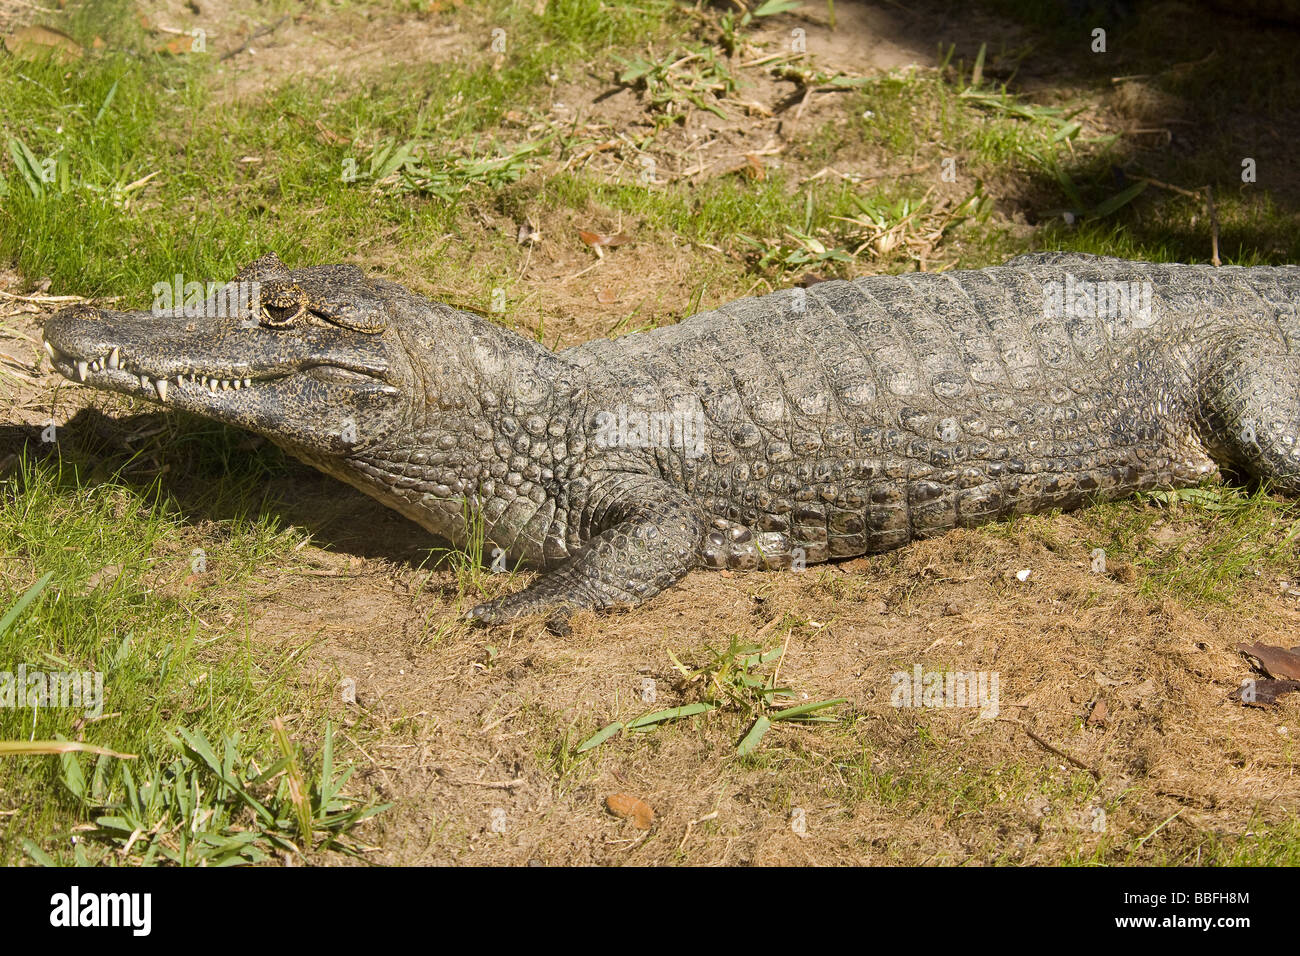 Southern Spectacled Caiman or Yacare Caiman found in central South America - Stock Image